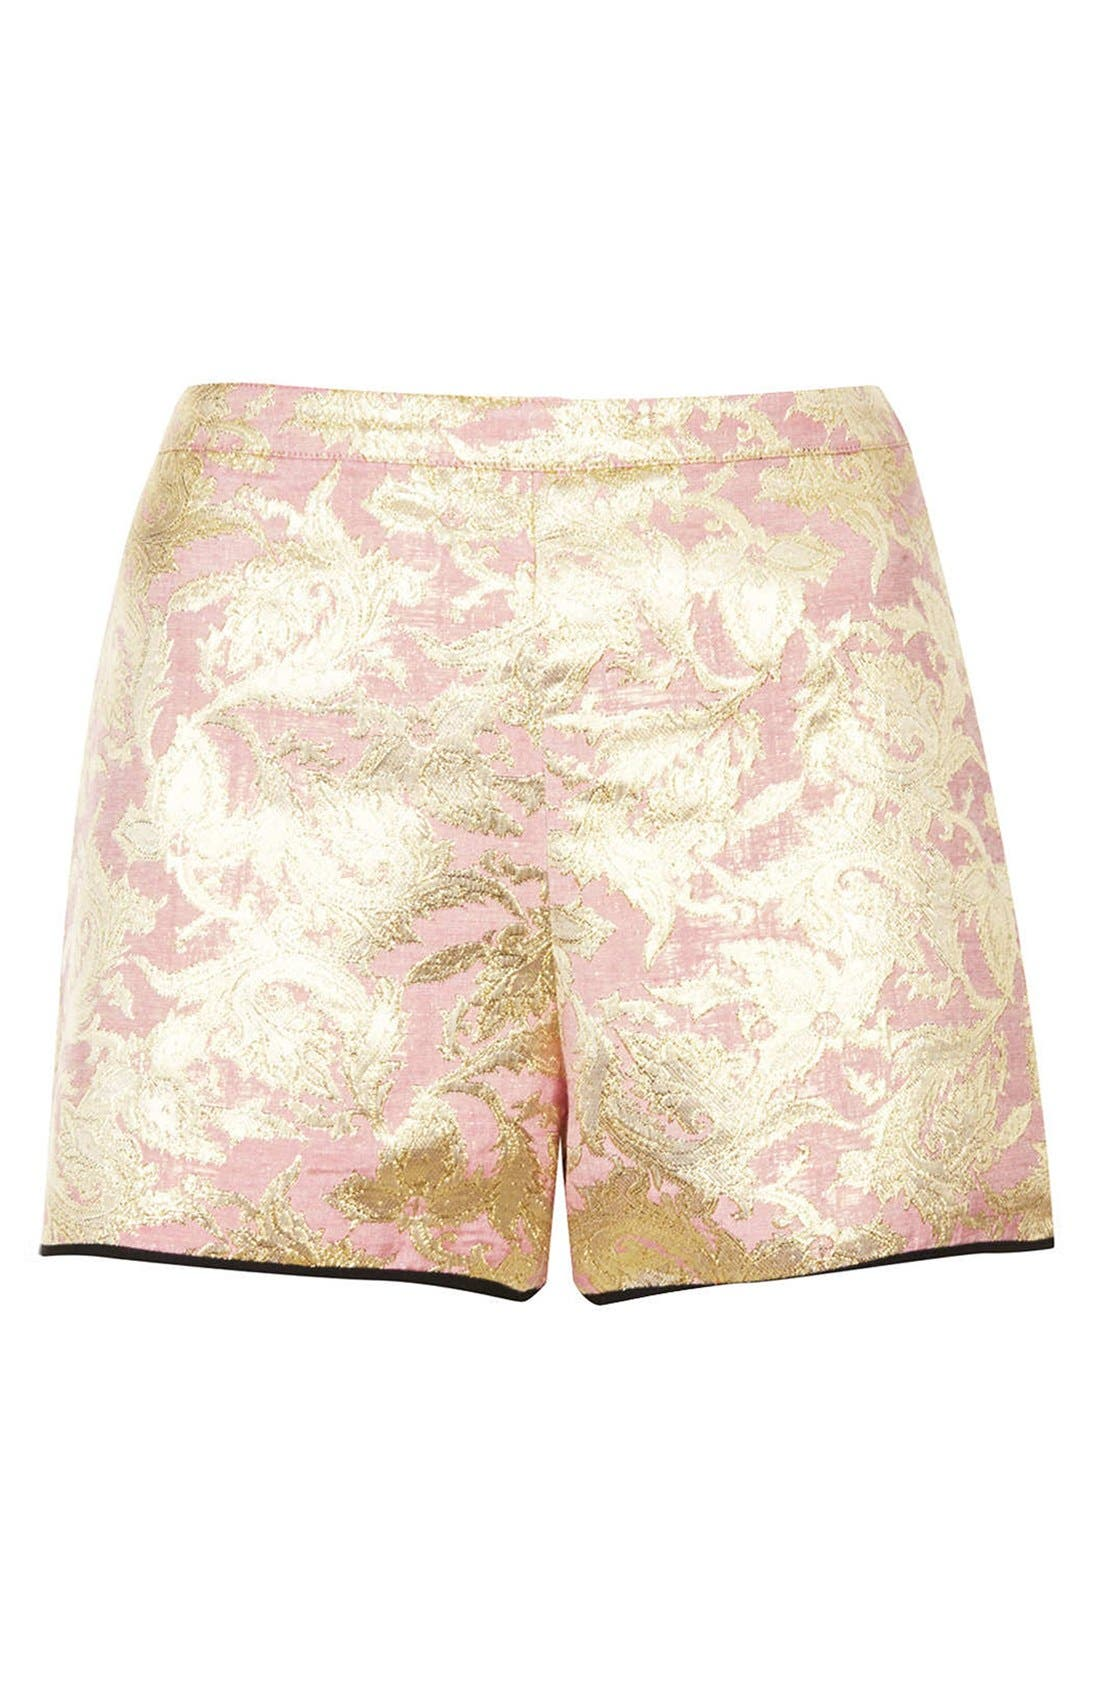 Alternate Image 3  - Topshop Metallic Jacquard Shorts